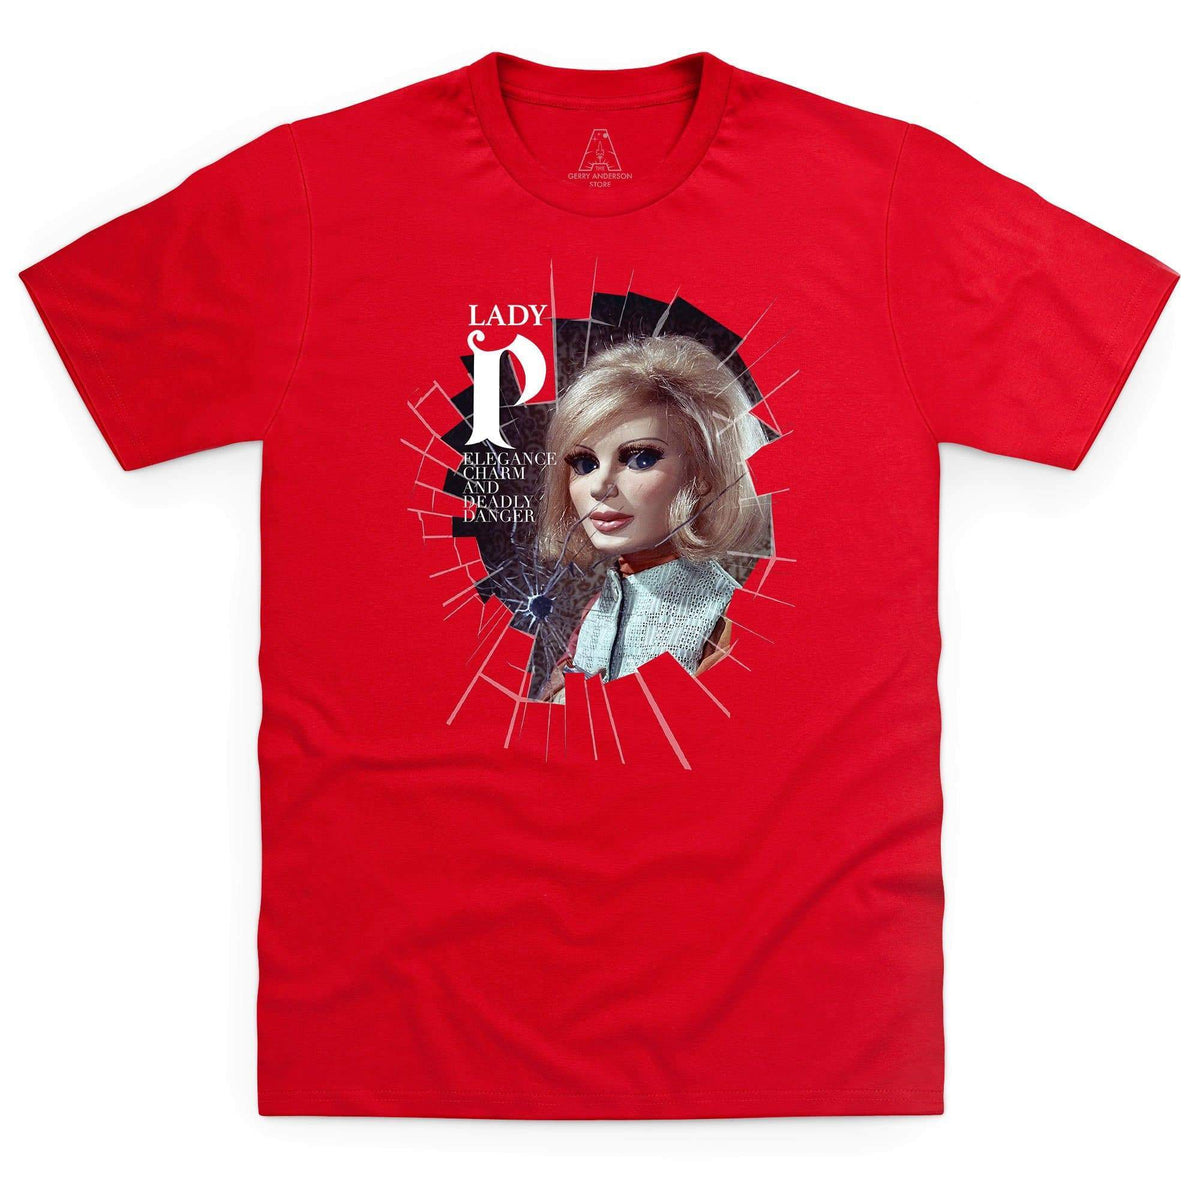 Lady Penelope - Elegance, Charm and Deadly Danger Men's T-Shirt [Official & Exclusive] - The Gerry Anderson Store